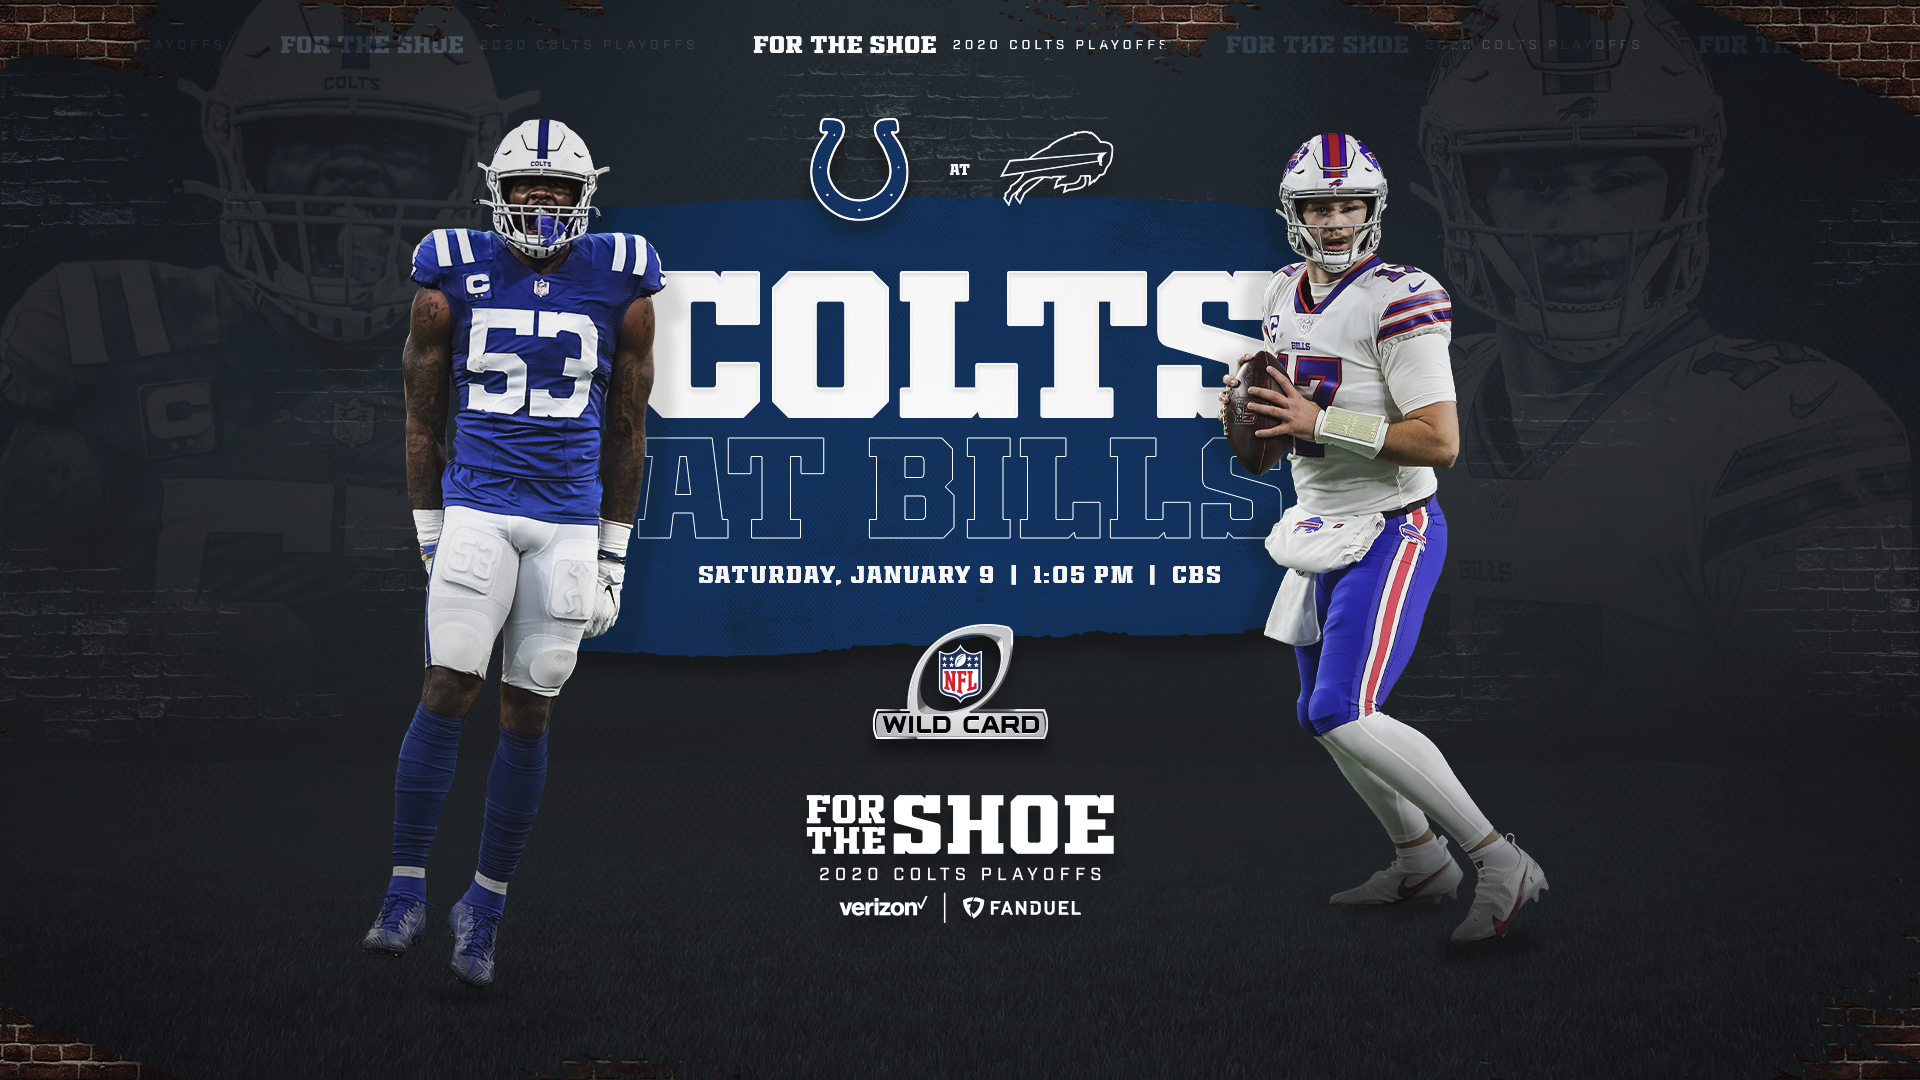 Colts Are Playoff Bound!